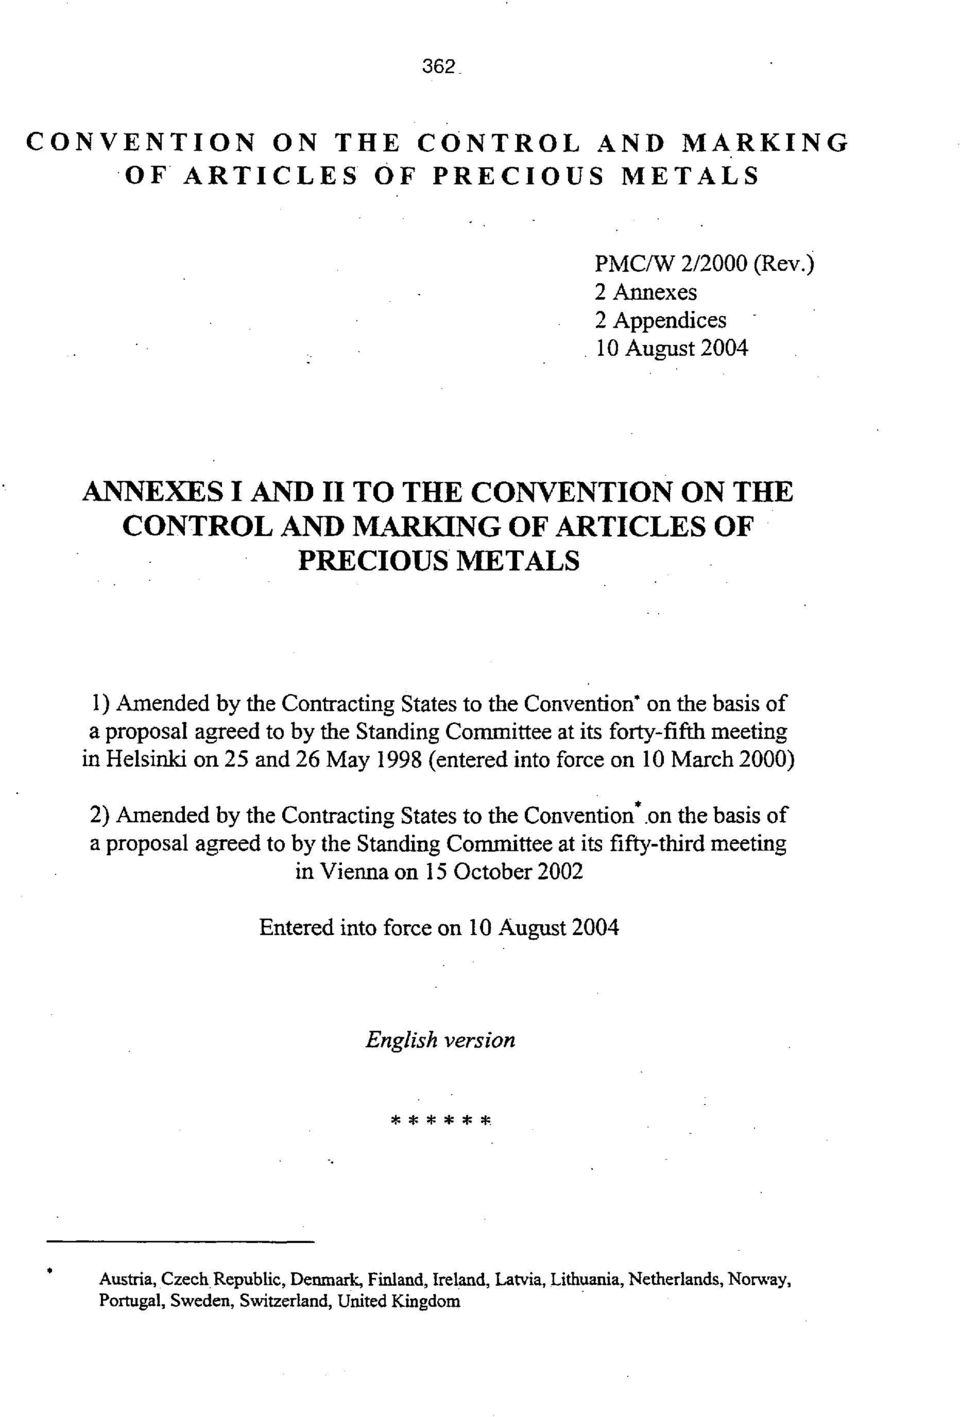 basis of a proposal agreed to by the Standing Committee at its forty-fifth meeting in Helsinki on 25 and 26 May 1998 (entered into force on 10 March 2000) 2) Amended by the Contracting States to the